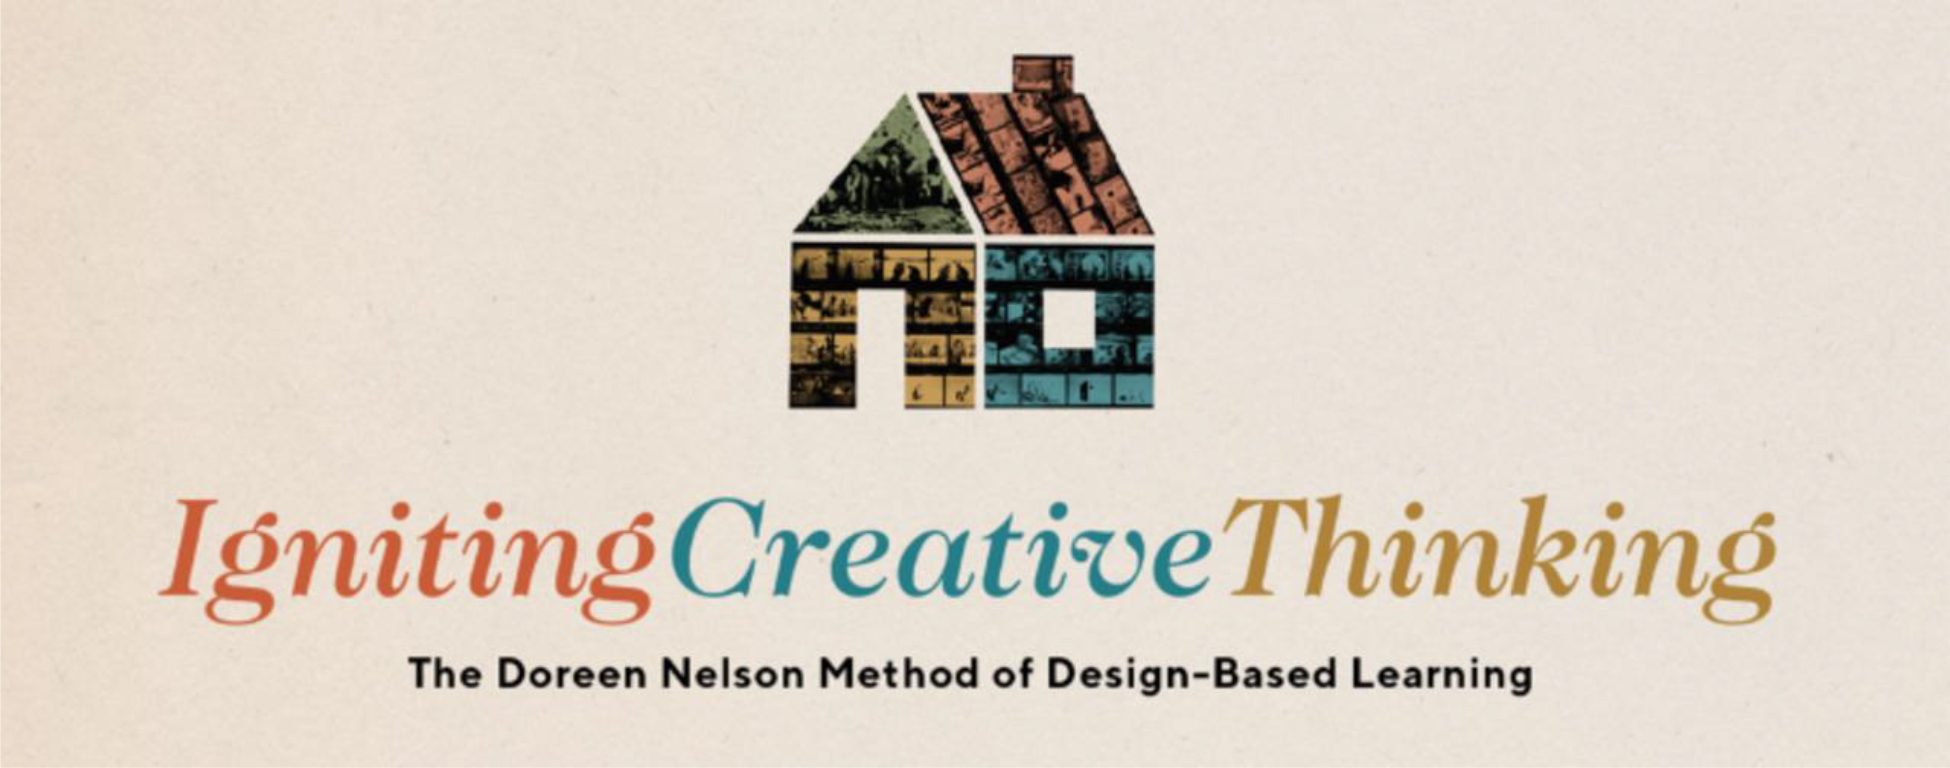 Igniting Creative Thinking banner